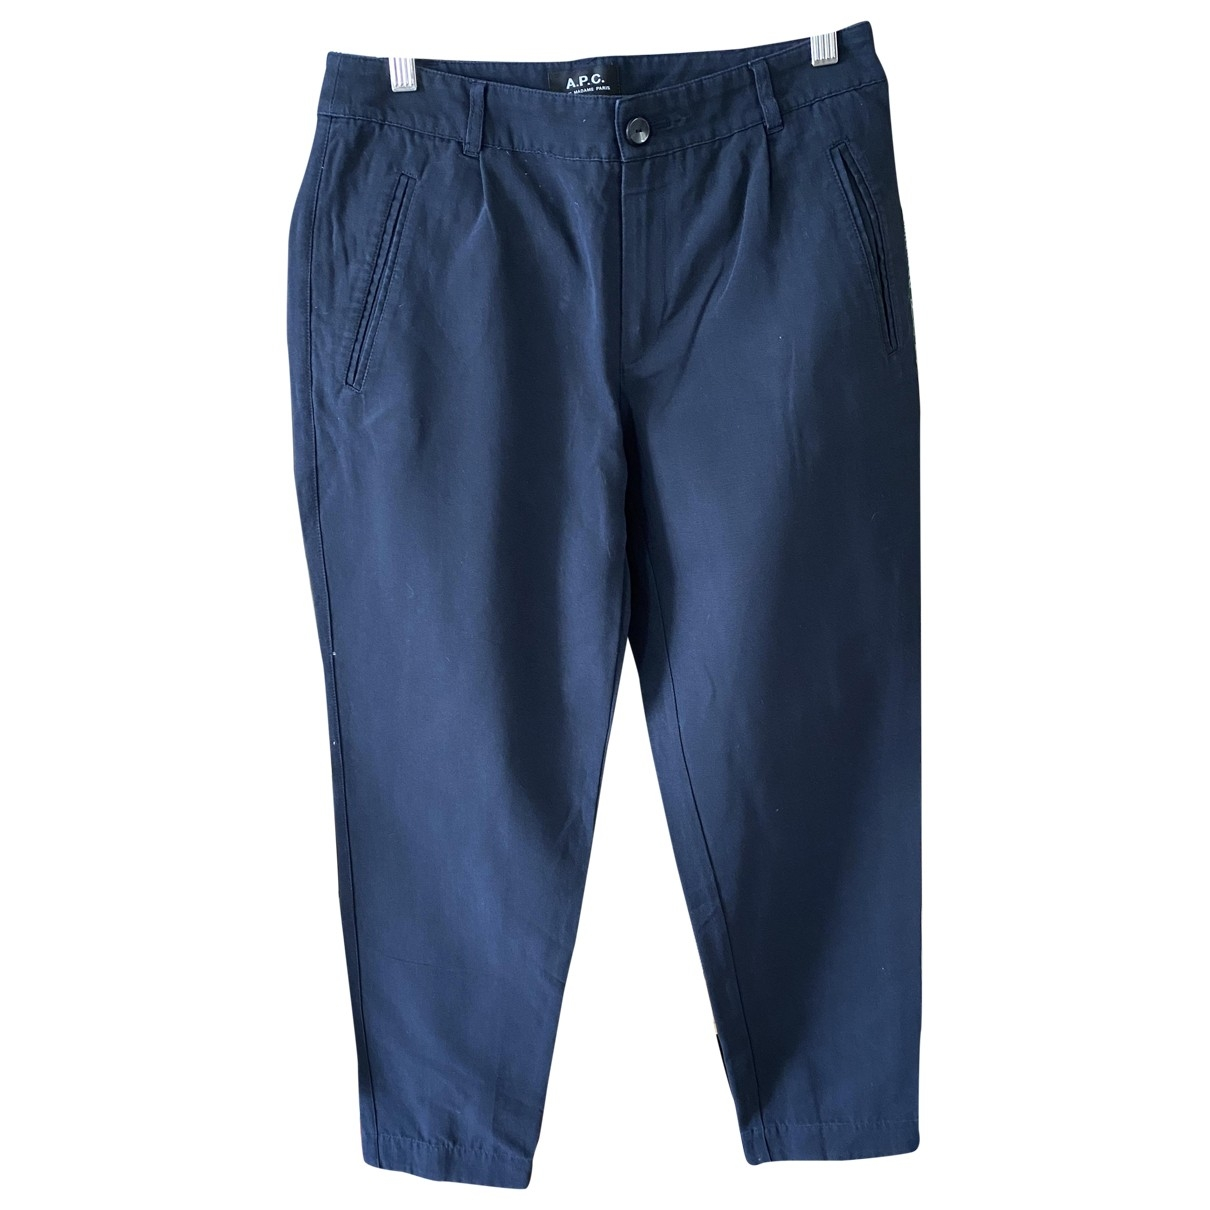 Apc \N Navy Cotton Trousers for Women 38 FR